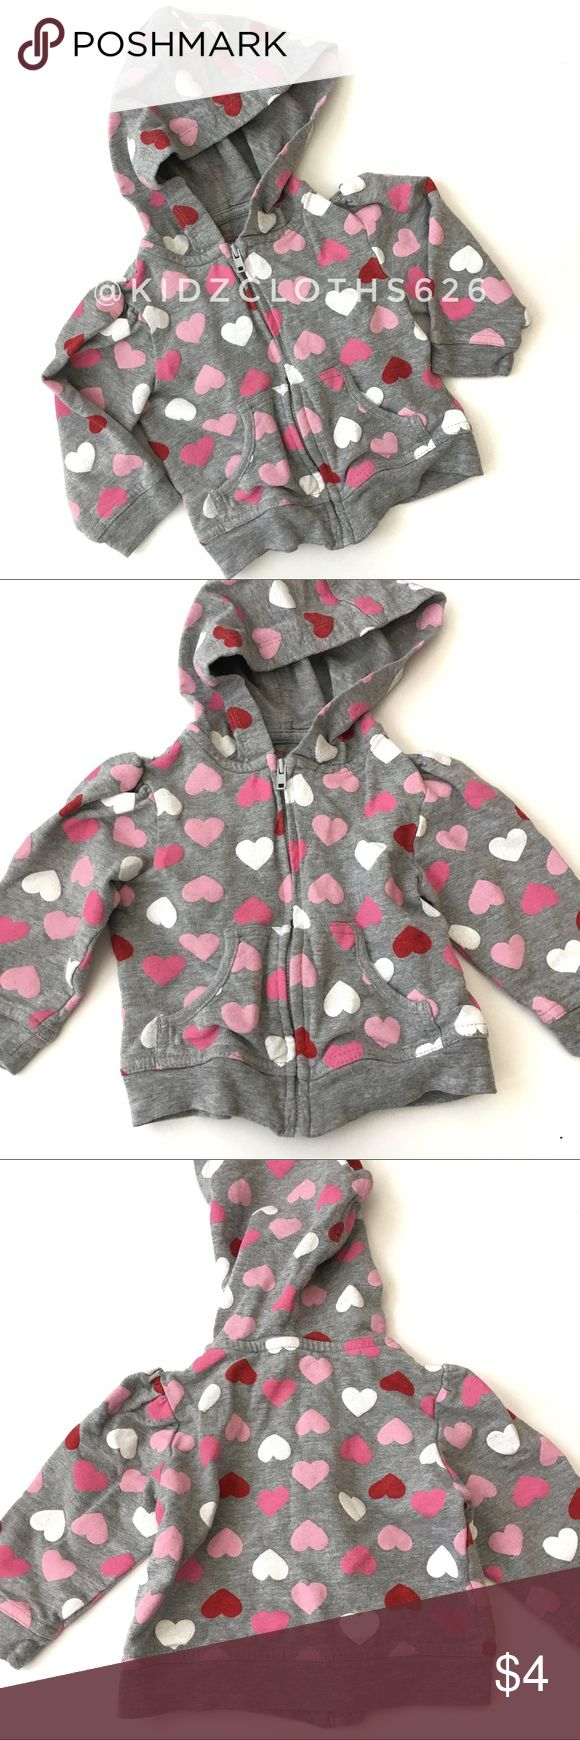 🍭 Valentines Zip up 🍭 Valentine's Zip up in grey with pink white and red hearts. Hooded with 2 front pockets. In Play Condition with some fading and wash wear and a small on sleeve (see pictures) 🍭Consignment Item, Smoke/Pet free home 🍭 ❗️Must be bundled❗️ Shirts & Tops Sweatshirts & Hoodies